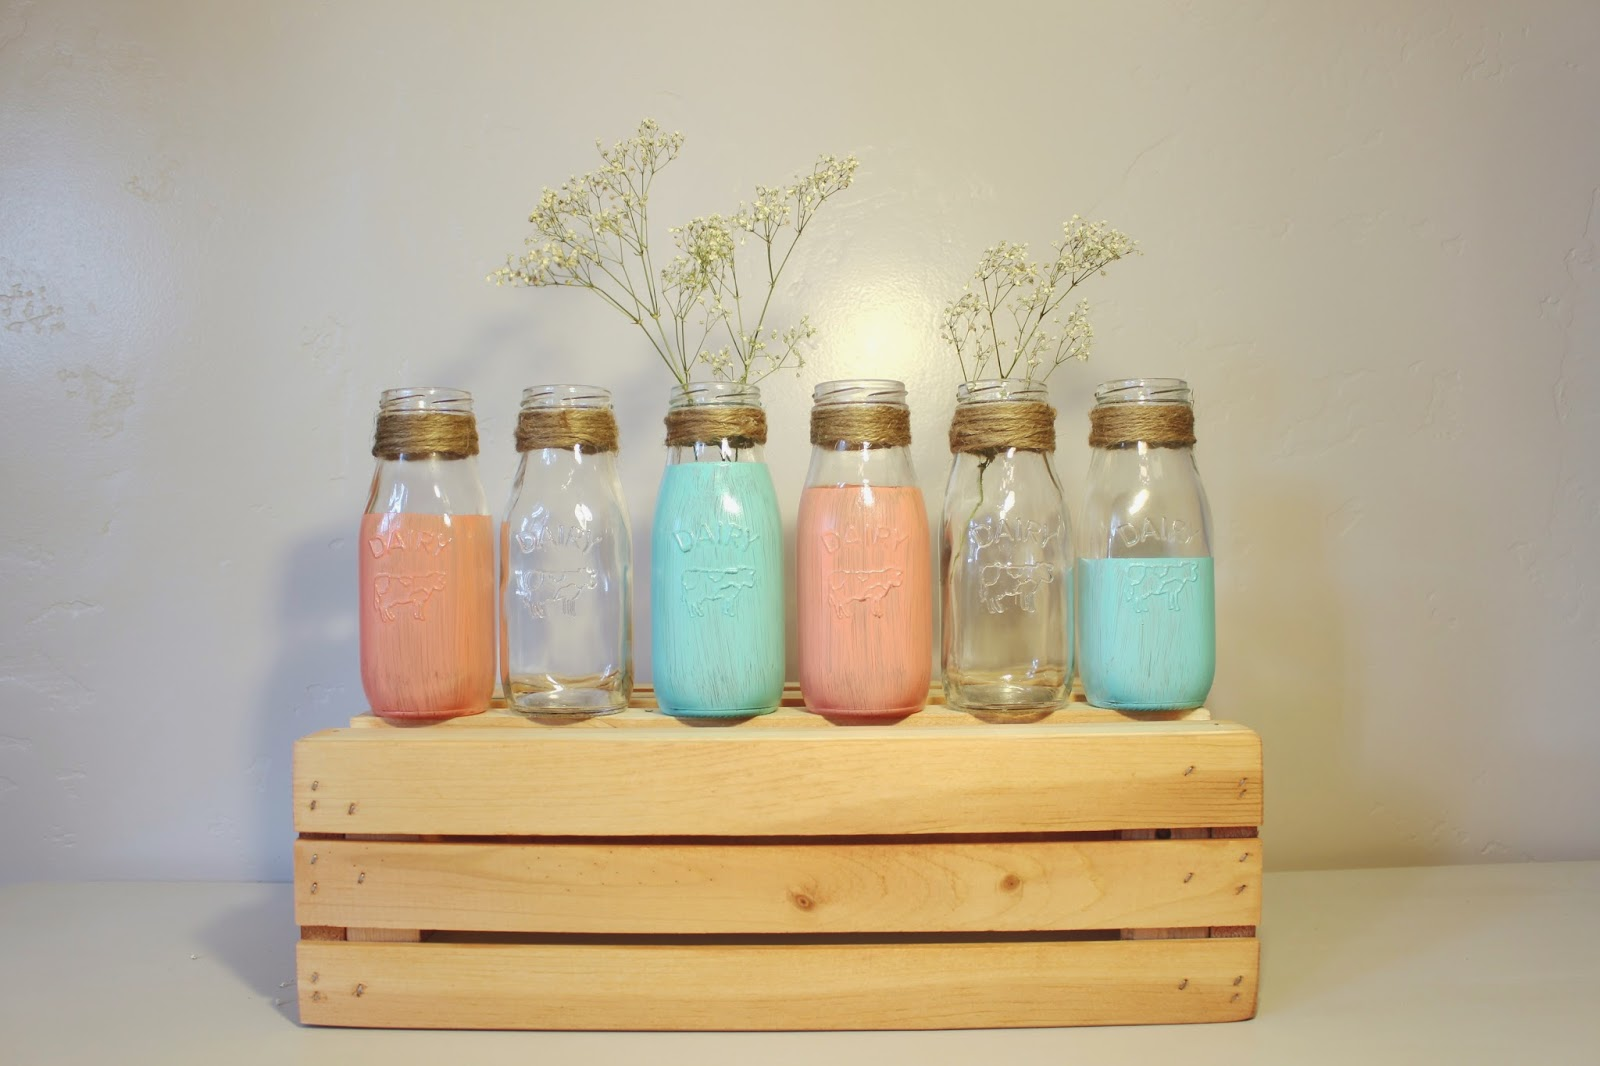 mini milk jugs, mini hand painted milk jugs, rustic milk jugs, rustic milk bottles, milk bottle decor, small painted milk bottles, turquoise milk jugs, coral milk jugs, coral and turquoise milk jugs, country wedding decor, rustic wedding decor, milk jug wedding decor, dairy bottle wedding decor